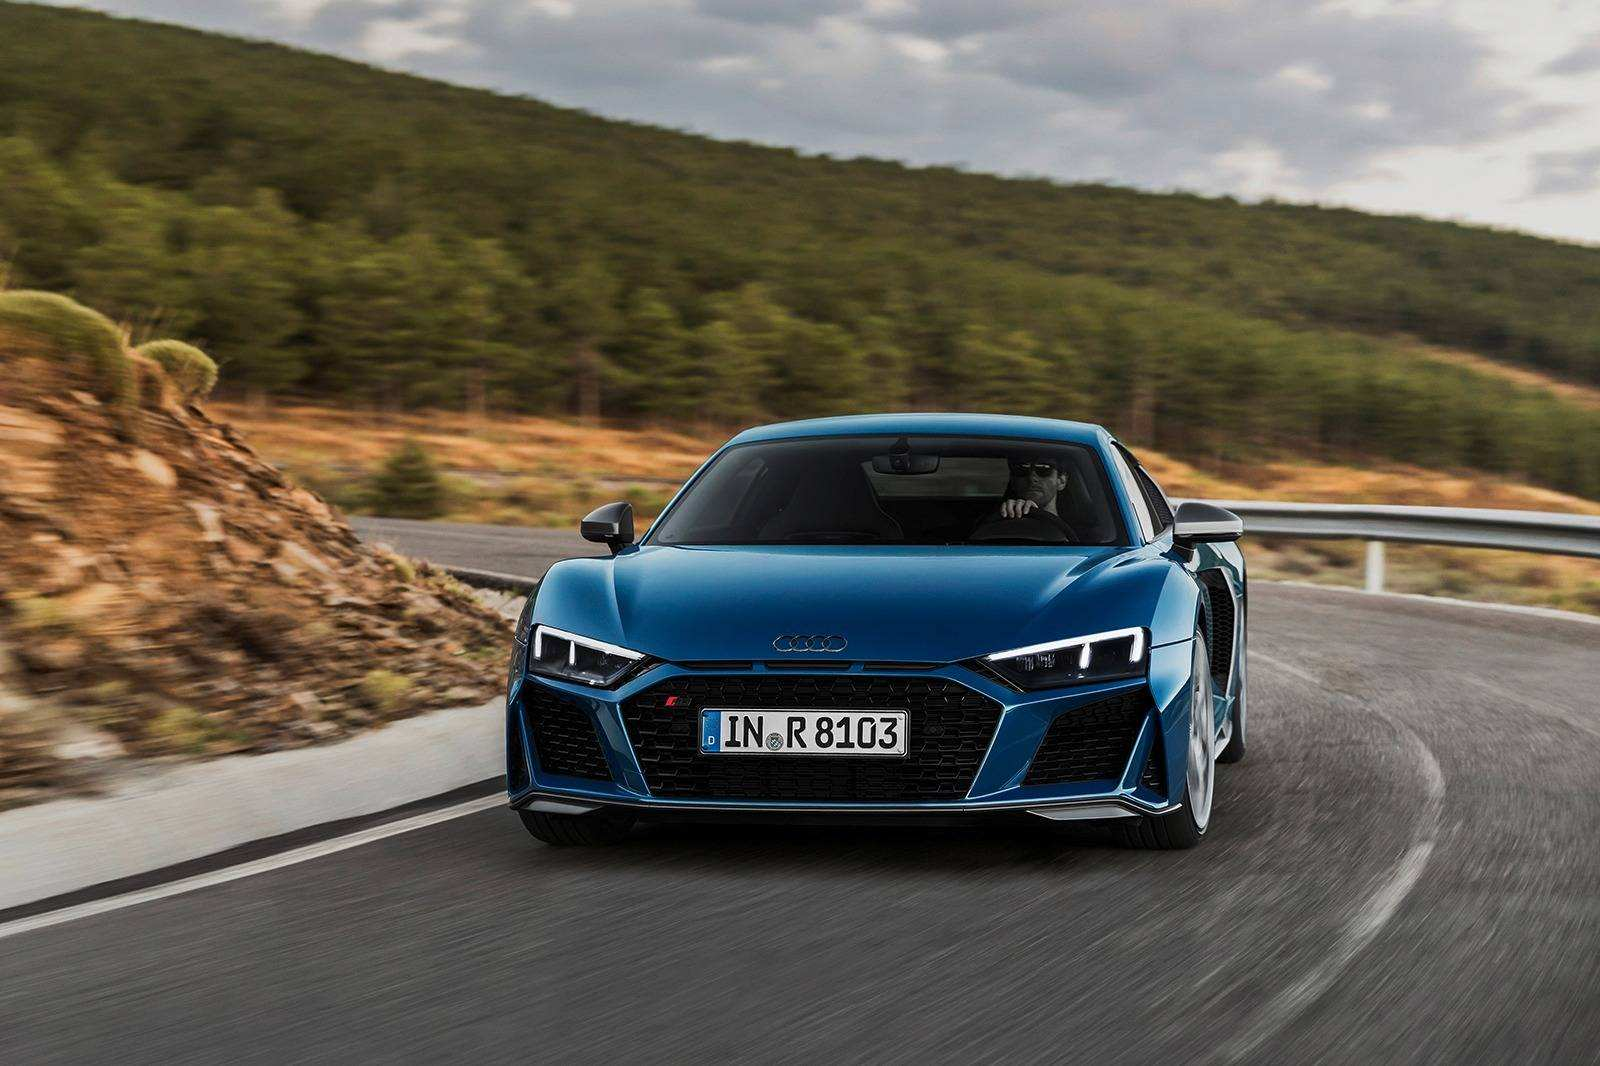 92 Great The Audi V8 2019 Price And Release Date Reviews for The Audi V8 2019 Price And Release Date